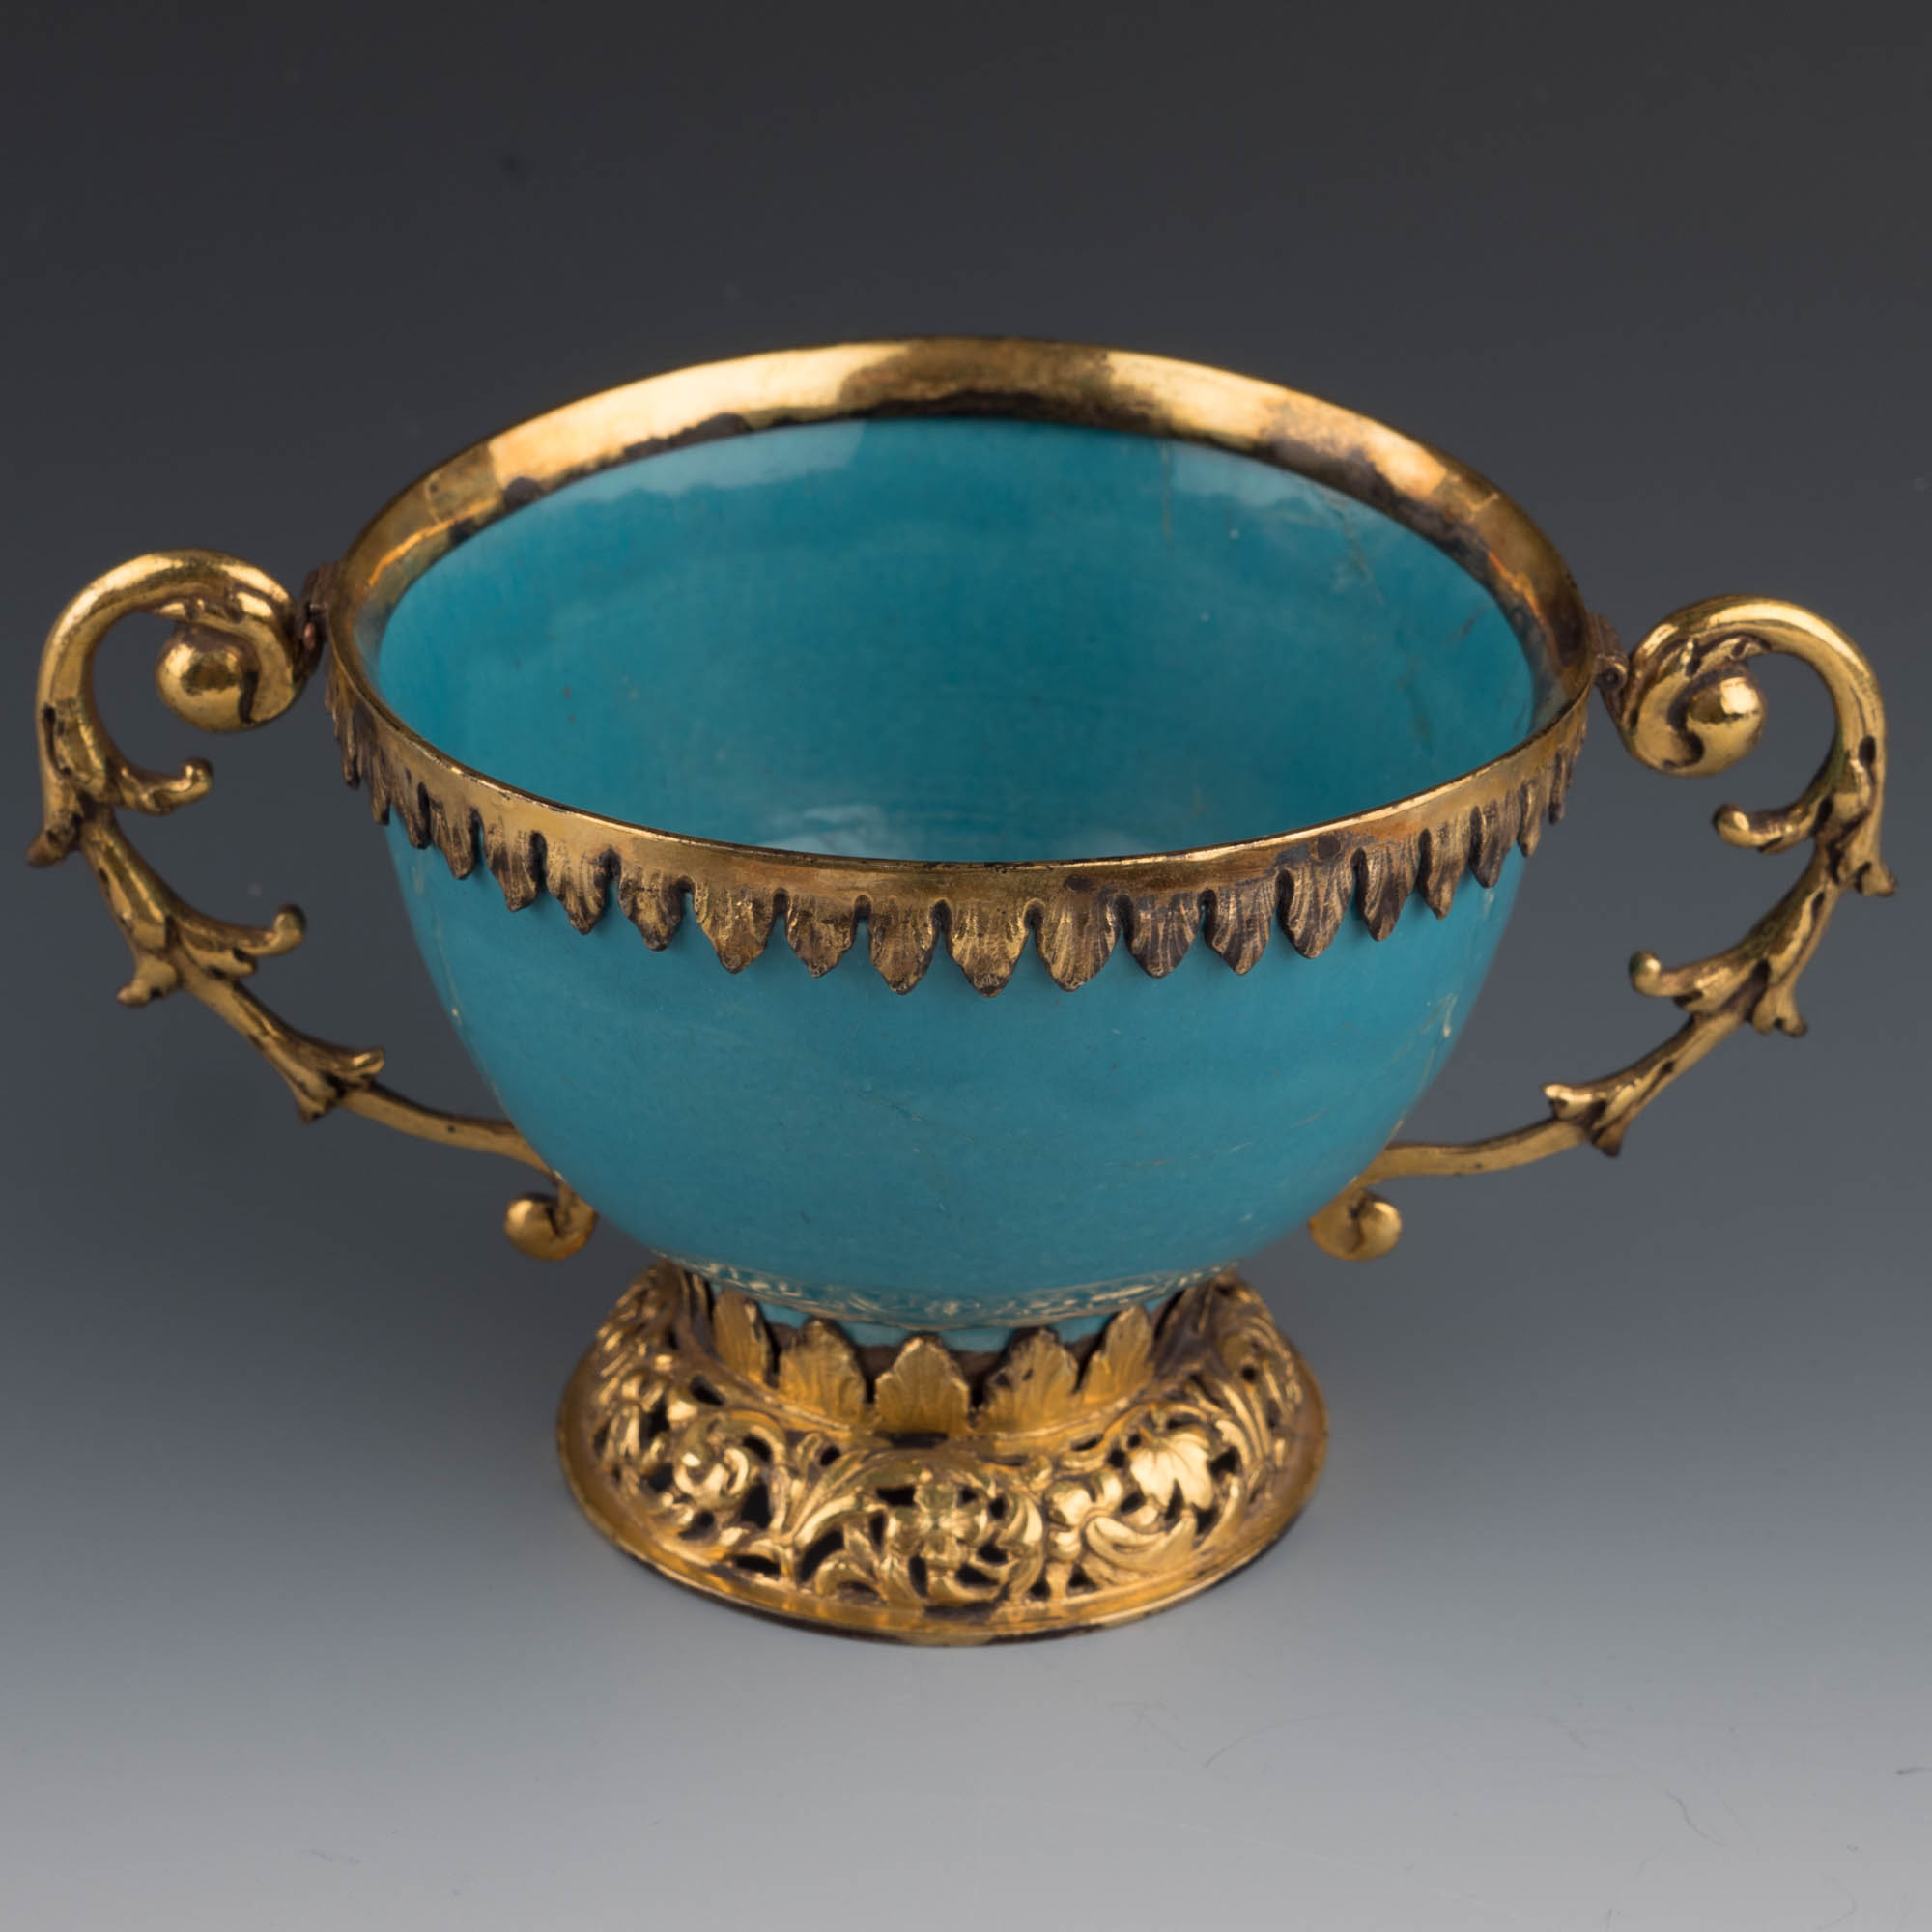 A silver-gilt-mounted turquoise tin-glazed bowl, first half of 17th Century.